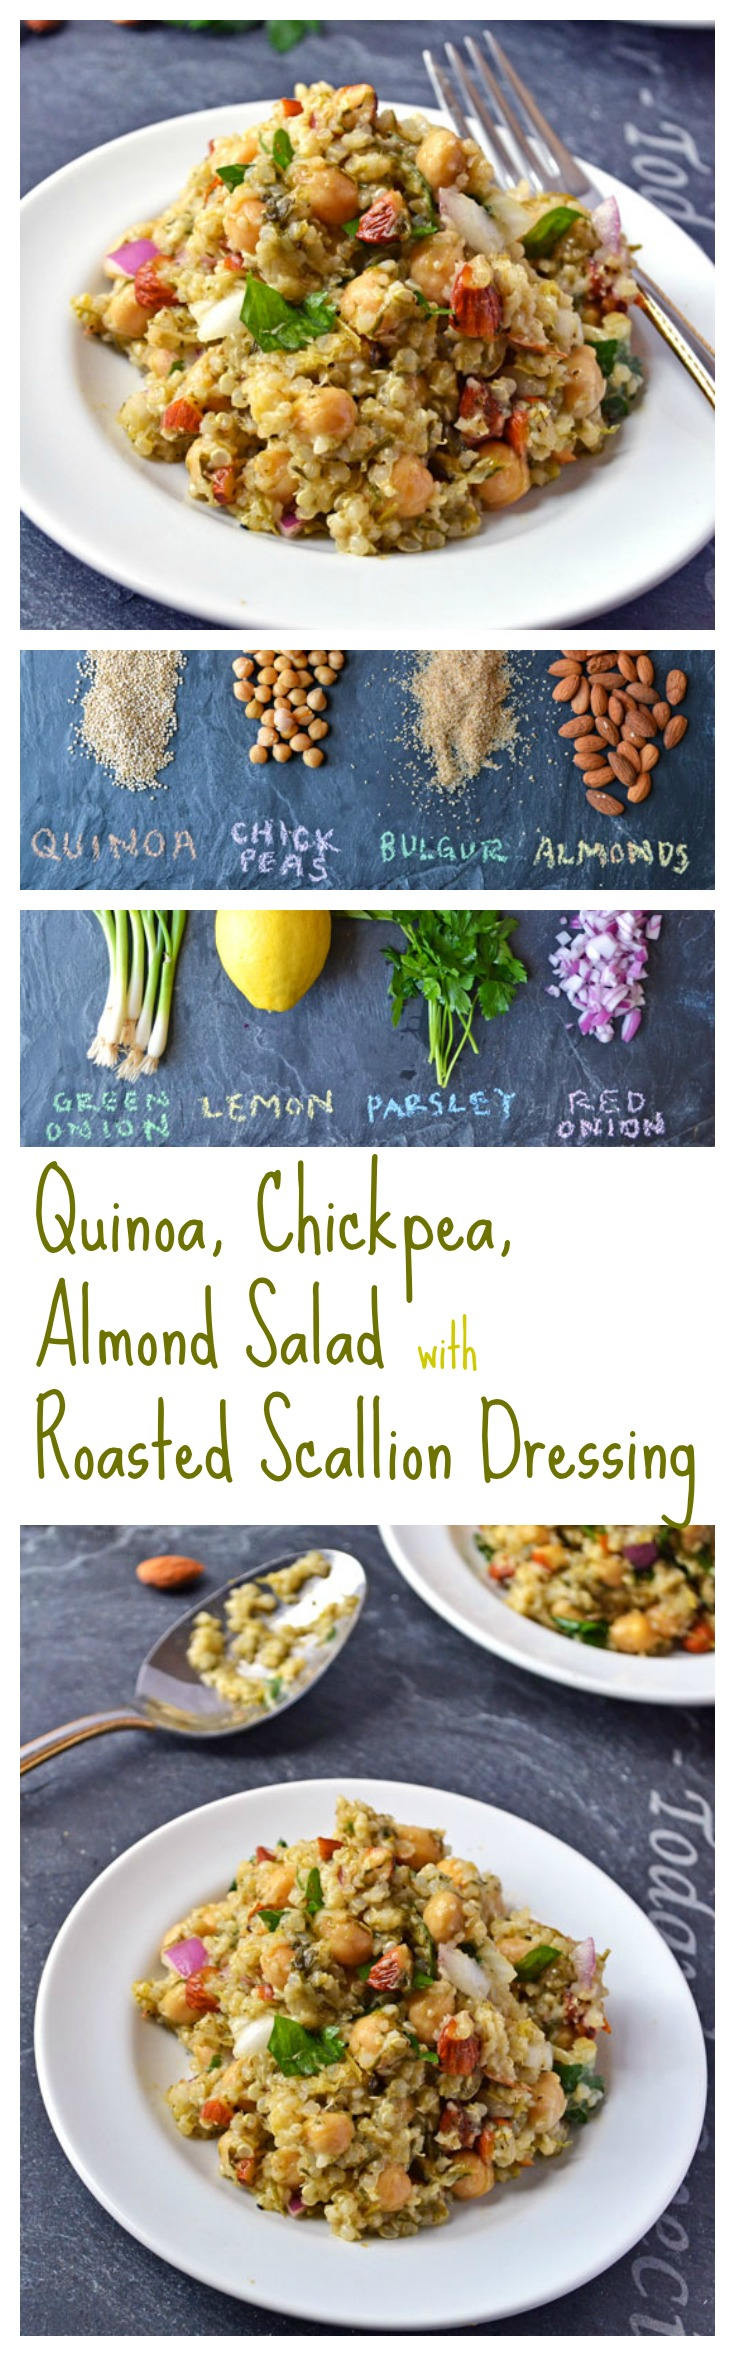 Quinoa, Chickpea, Almond Salad with Roasted Scallion Dressing // Well-Plated